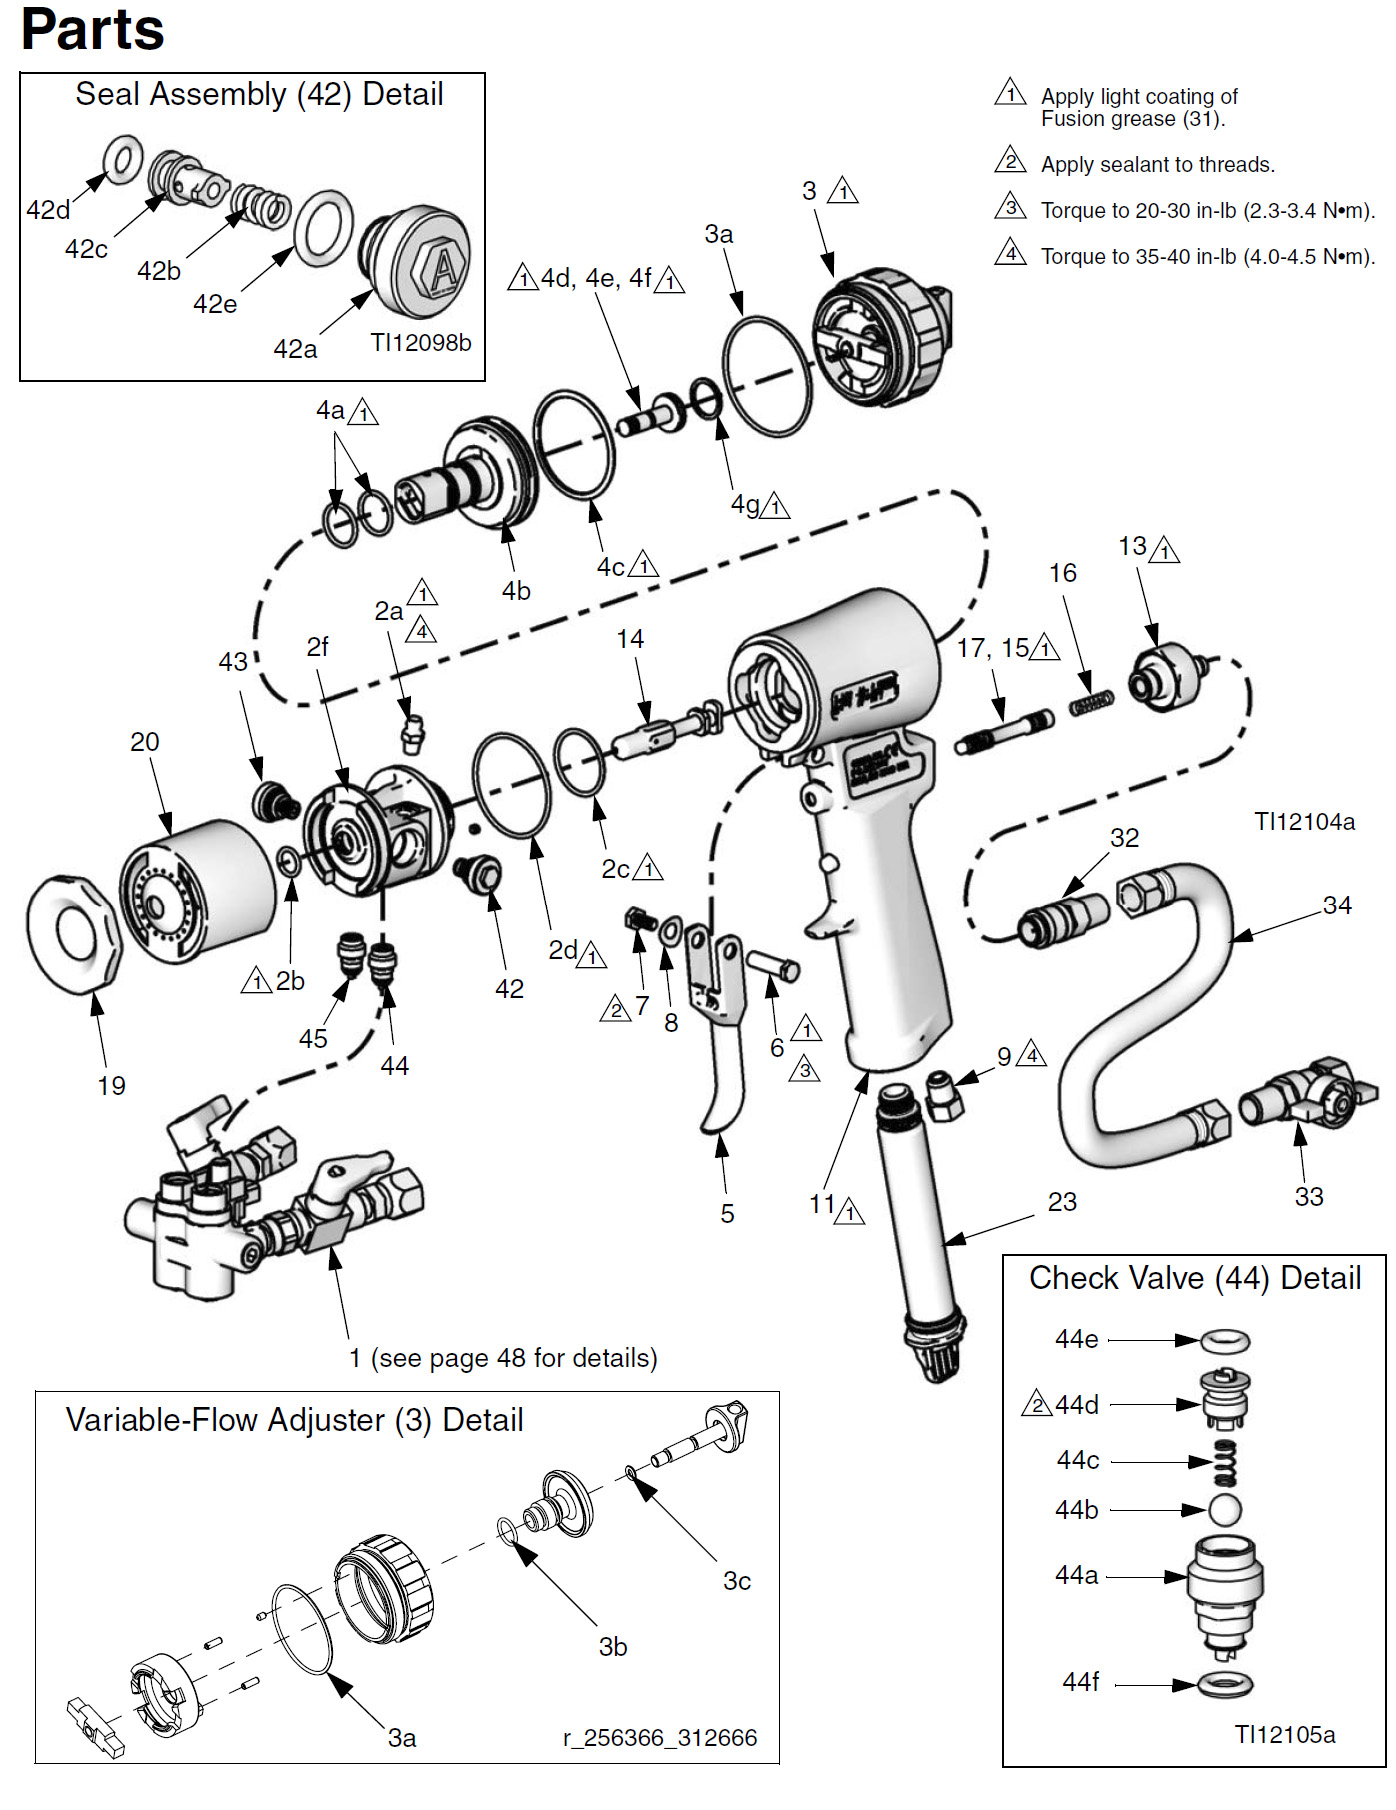 Graco Fusion CS Exploded Diagram Page 1